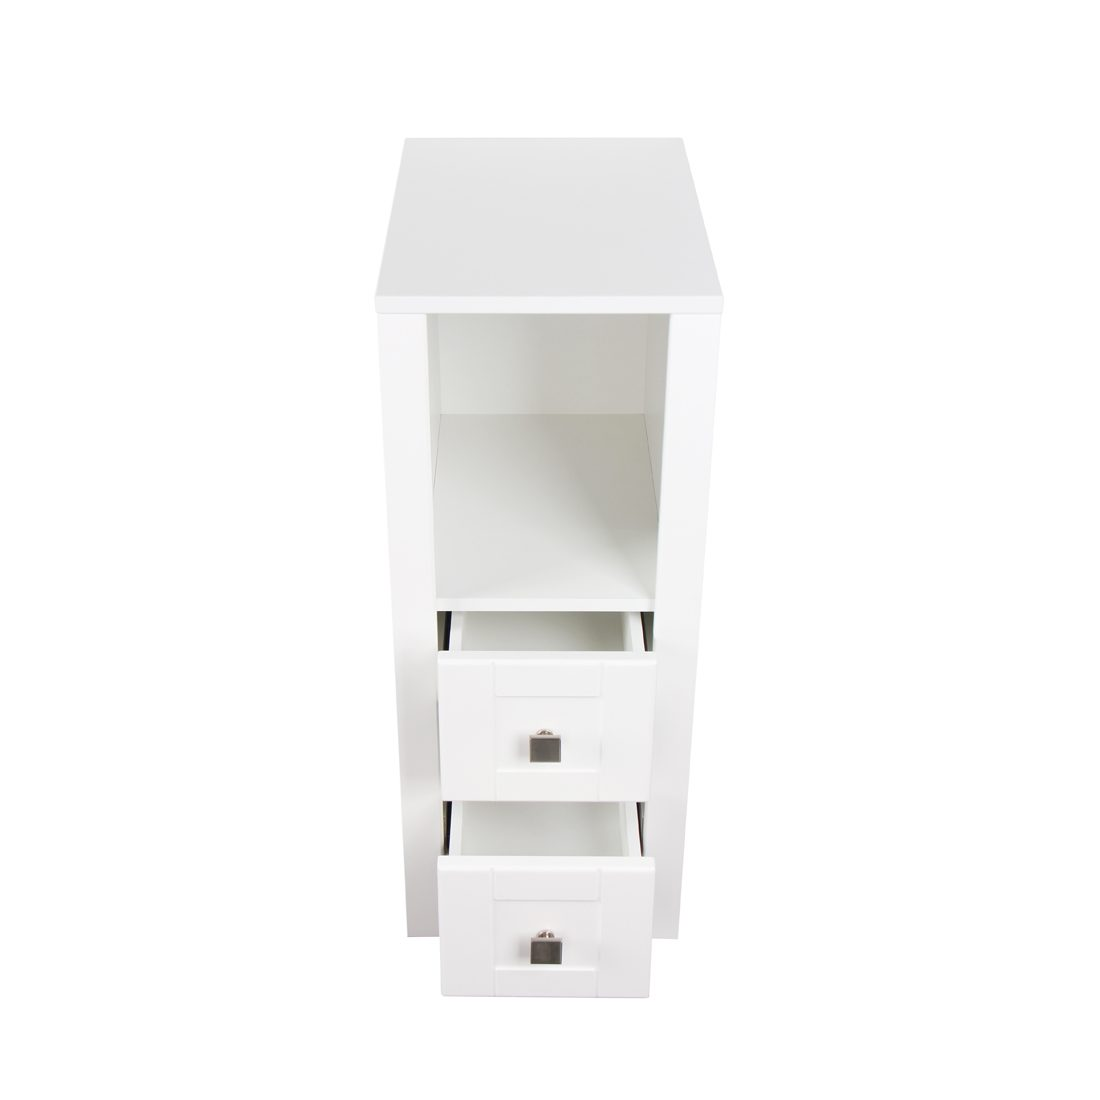 Braylee 13inch Vanity With 2 Drawers White Inside View